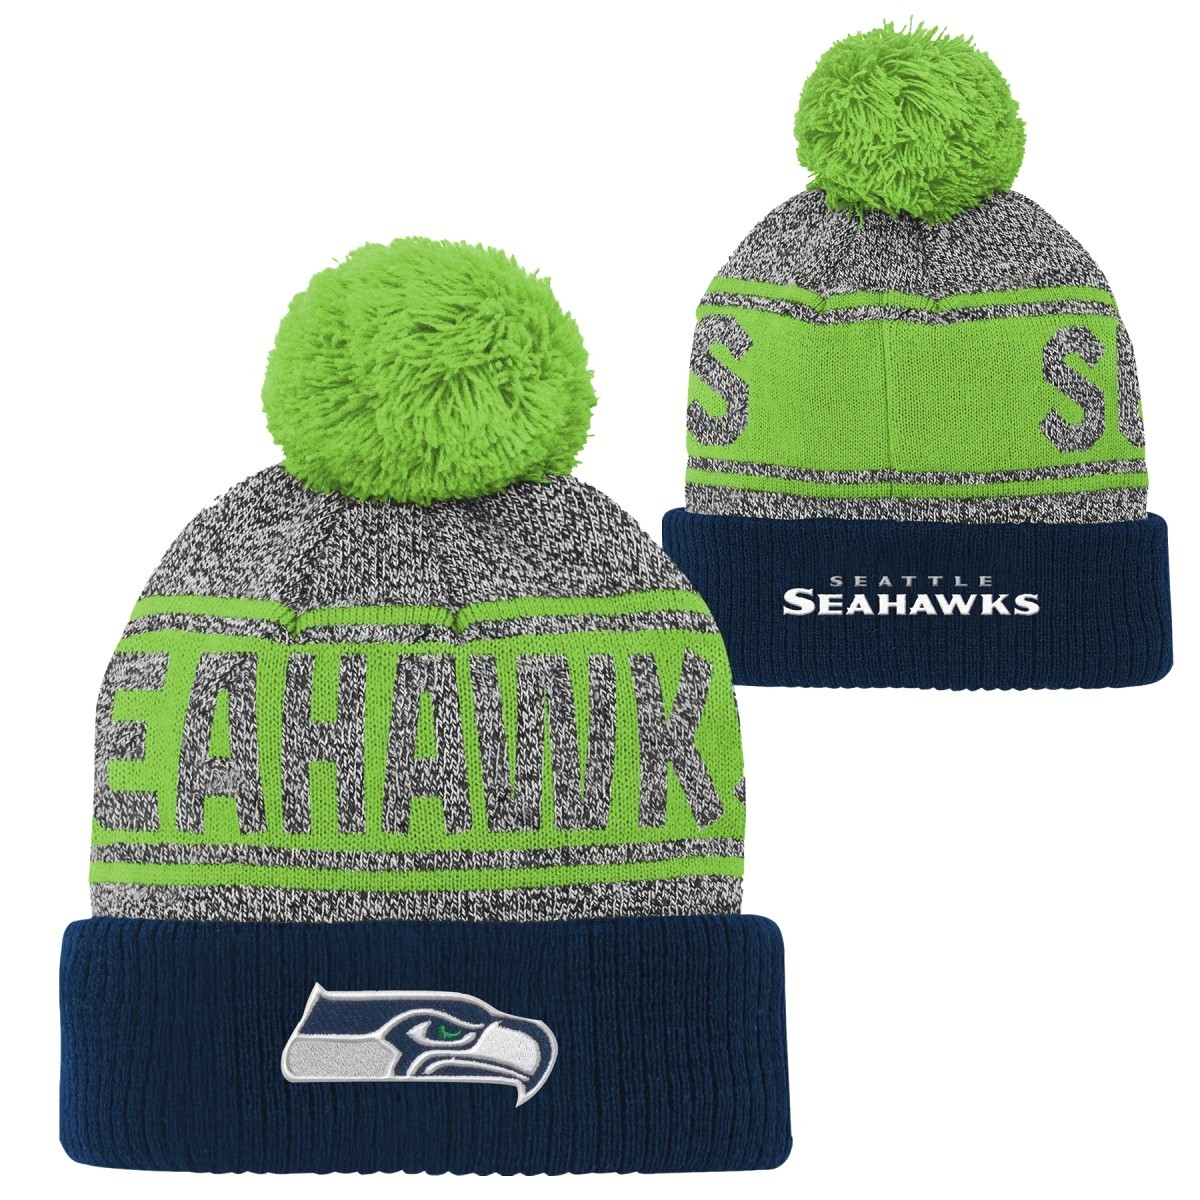 56beaced274279 Details about Seattle Seahawks Youth NFL